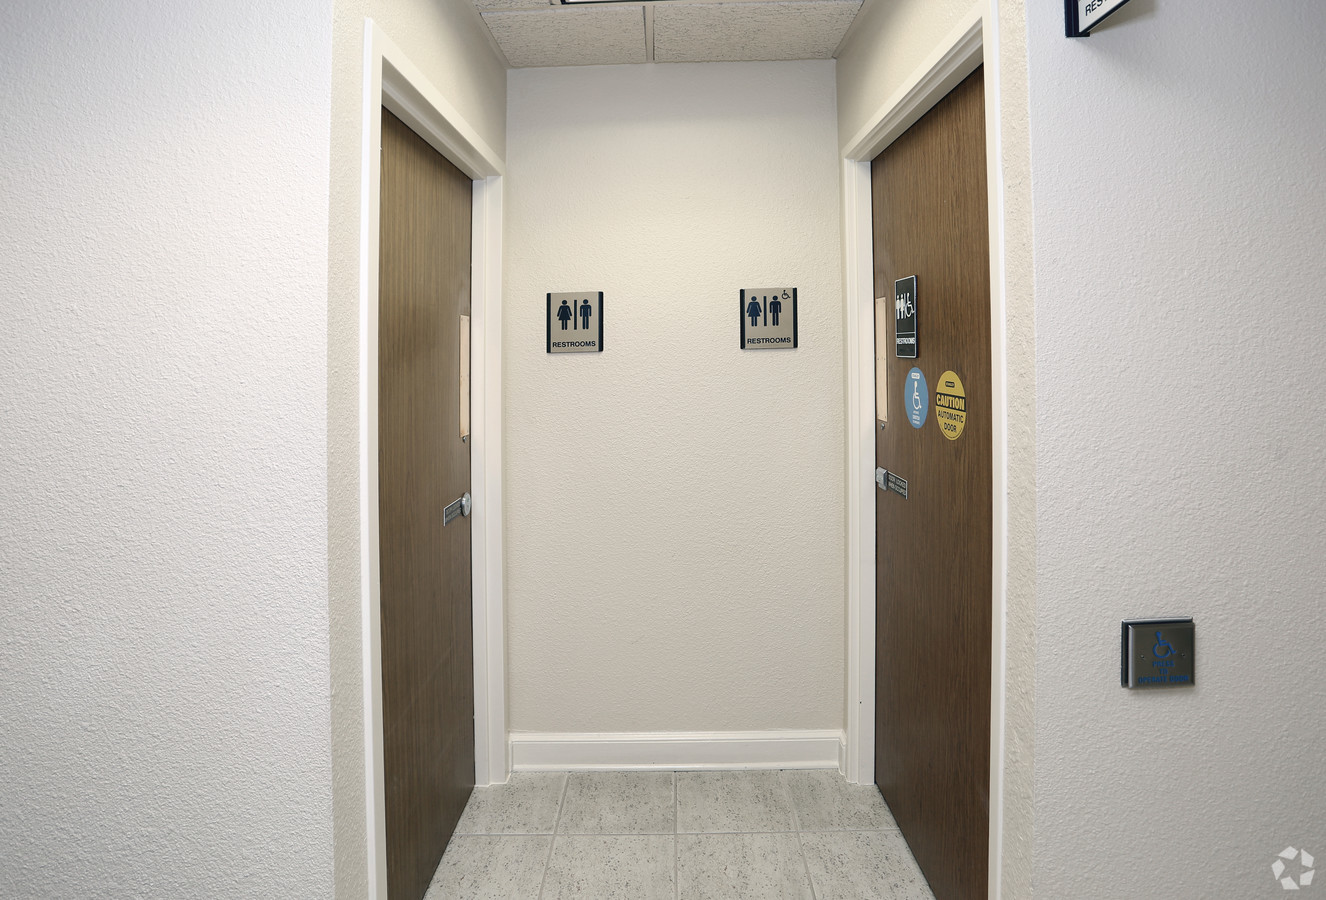 Medical Office Suite in Dallas - Suite 200 - Image 9 of 20